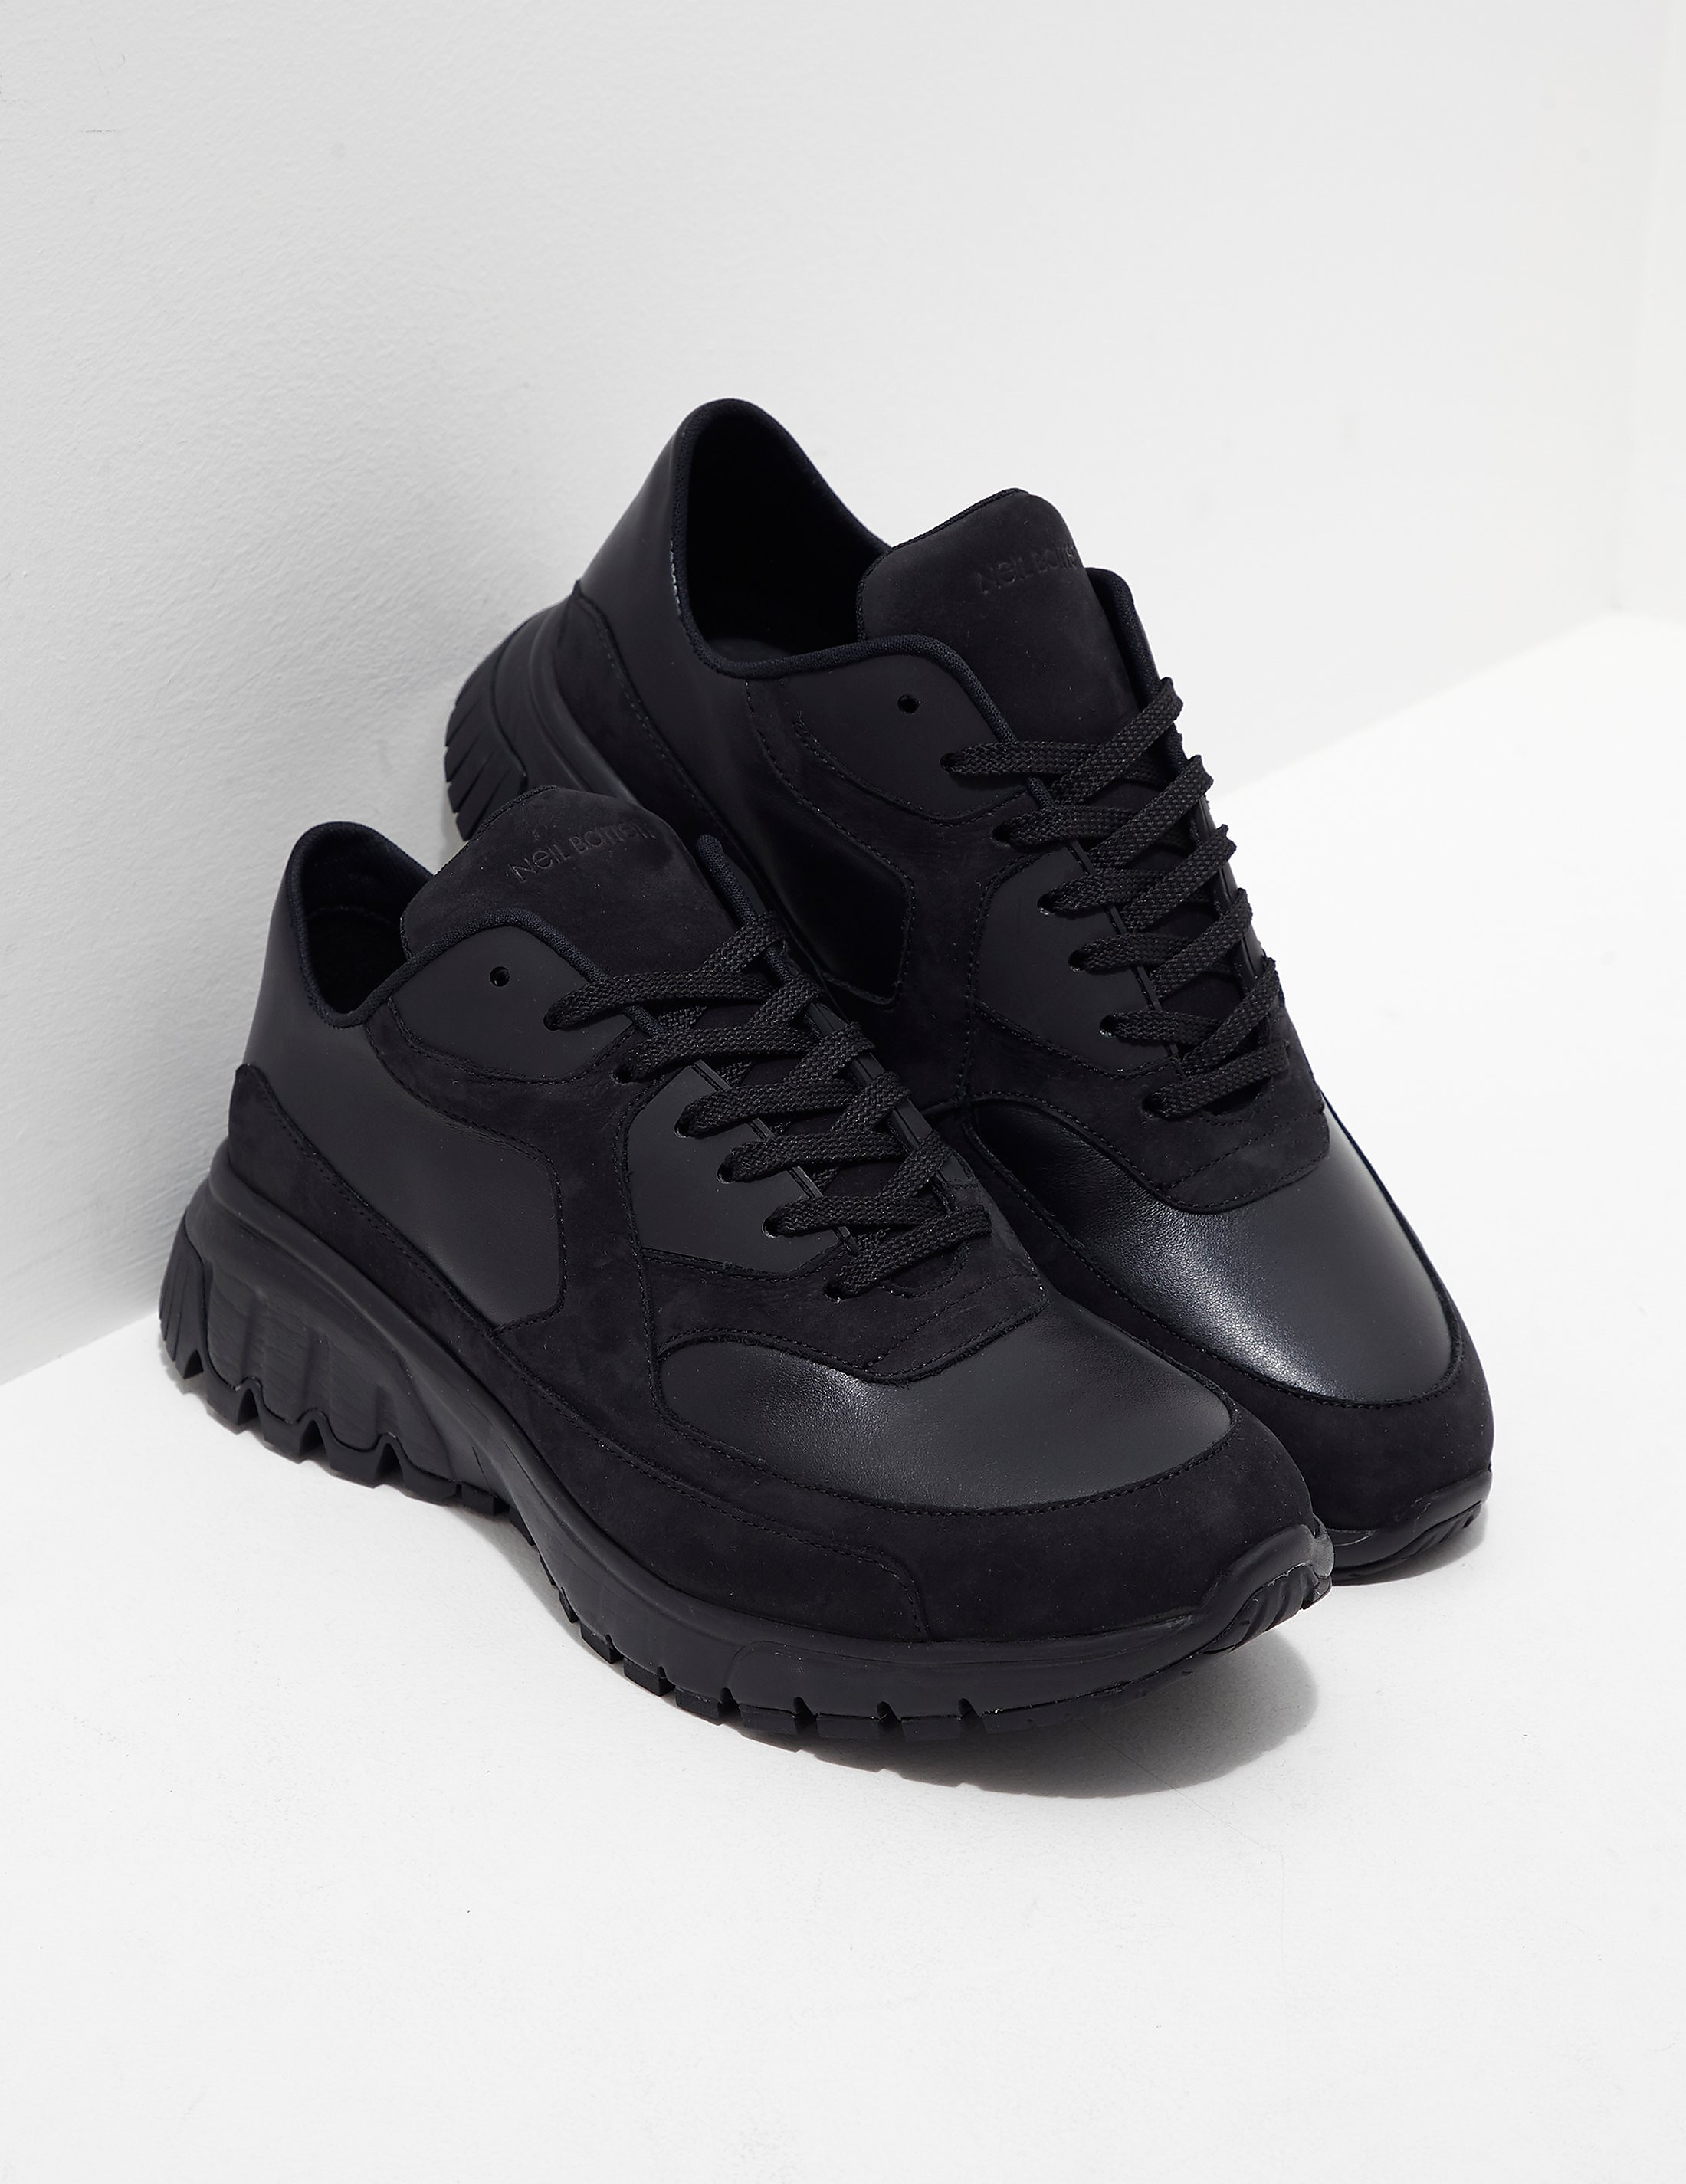 Neil Barrett Urban Trainer